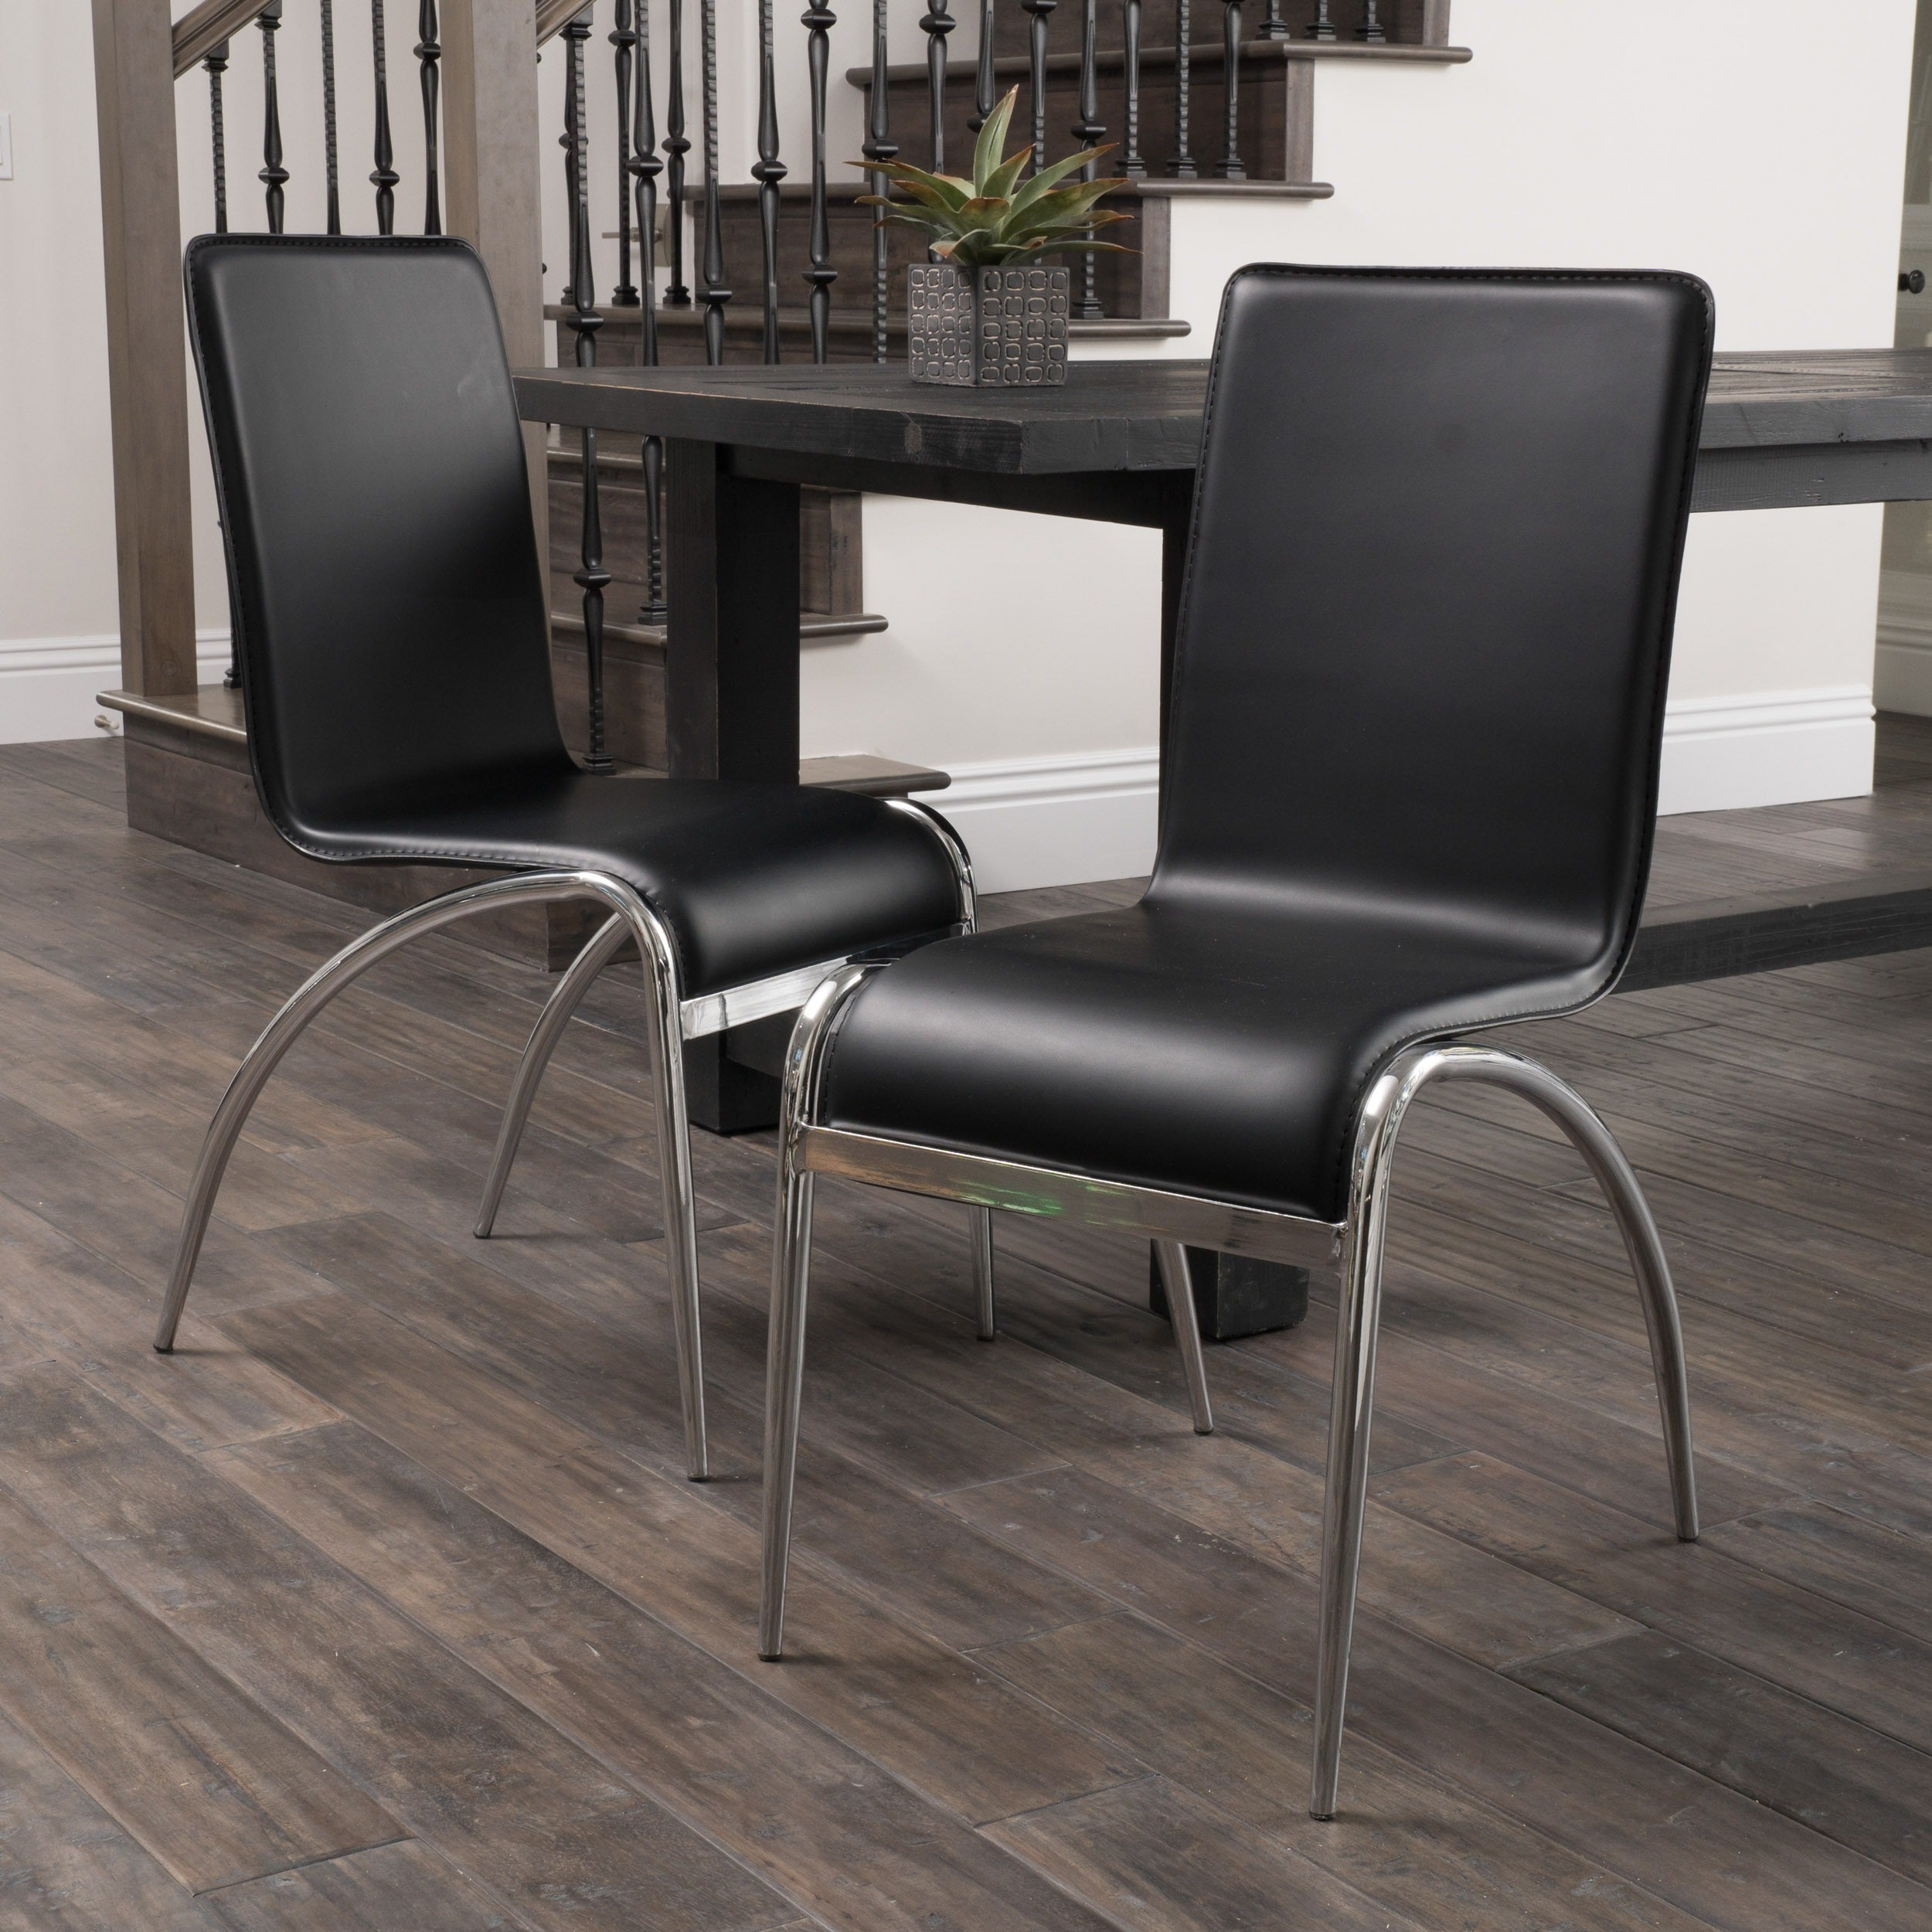 Shop kensington black modern chair set of 2 by christopher knight home on sale free shipping today overstock 6504352